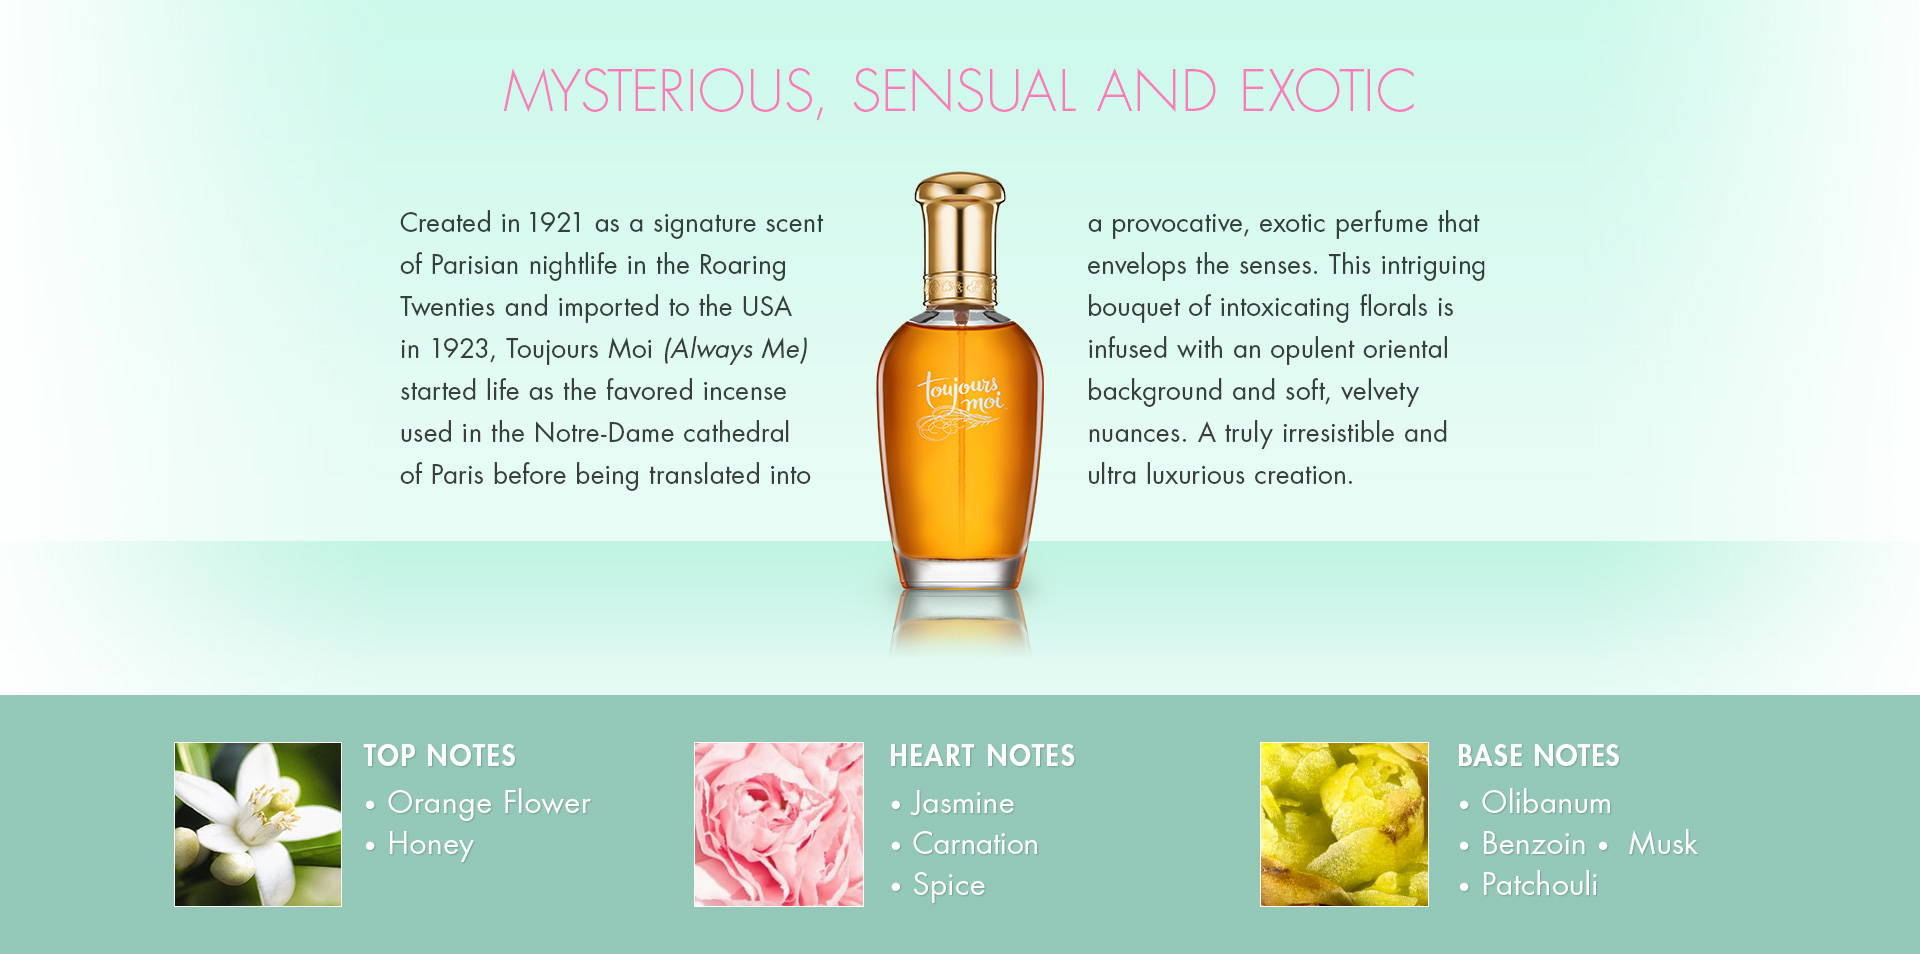 Mysterious, Sensual and Exotic. Created in 1921 as a signature scent of Parisian nightlife in the Roaring Twenties and imported to the USA in 1923, Toujours Moi (Always Me) started life as the favored incense used in the Notre-Dame cathedral of Paris before being translated into a provocative, exotic perfume that envelops the senses. This intriguing bouquet of intoxicating florals is infused with an opulent oriental background and soft, velvety nuances. A truly irresistible and ultra luxurious creation. TOP NOTES • Orange Flower• Honey. HEART NOTES • Jasmine• Carnation• Spice. BASE NOTES • Olibanum • Benzoin •  Musk• Patchouli.